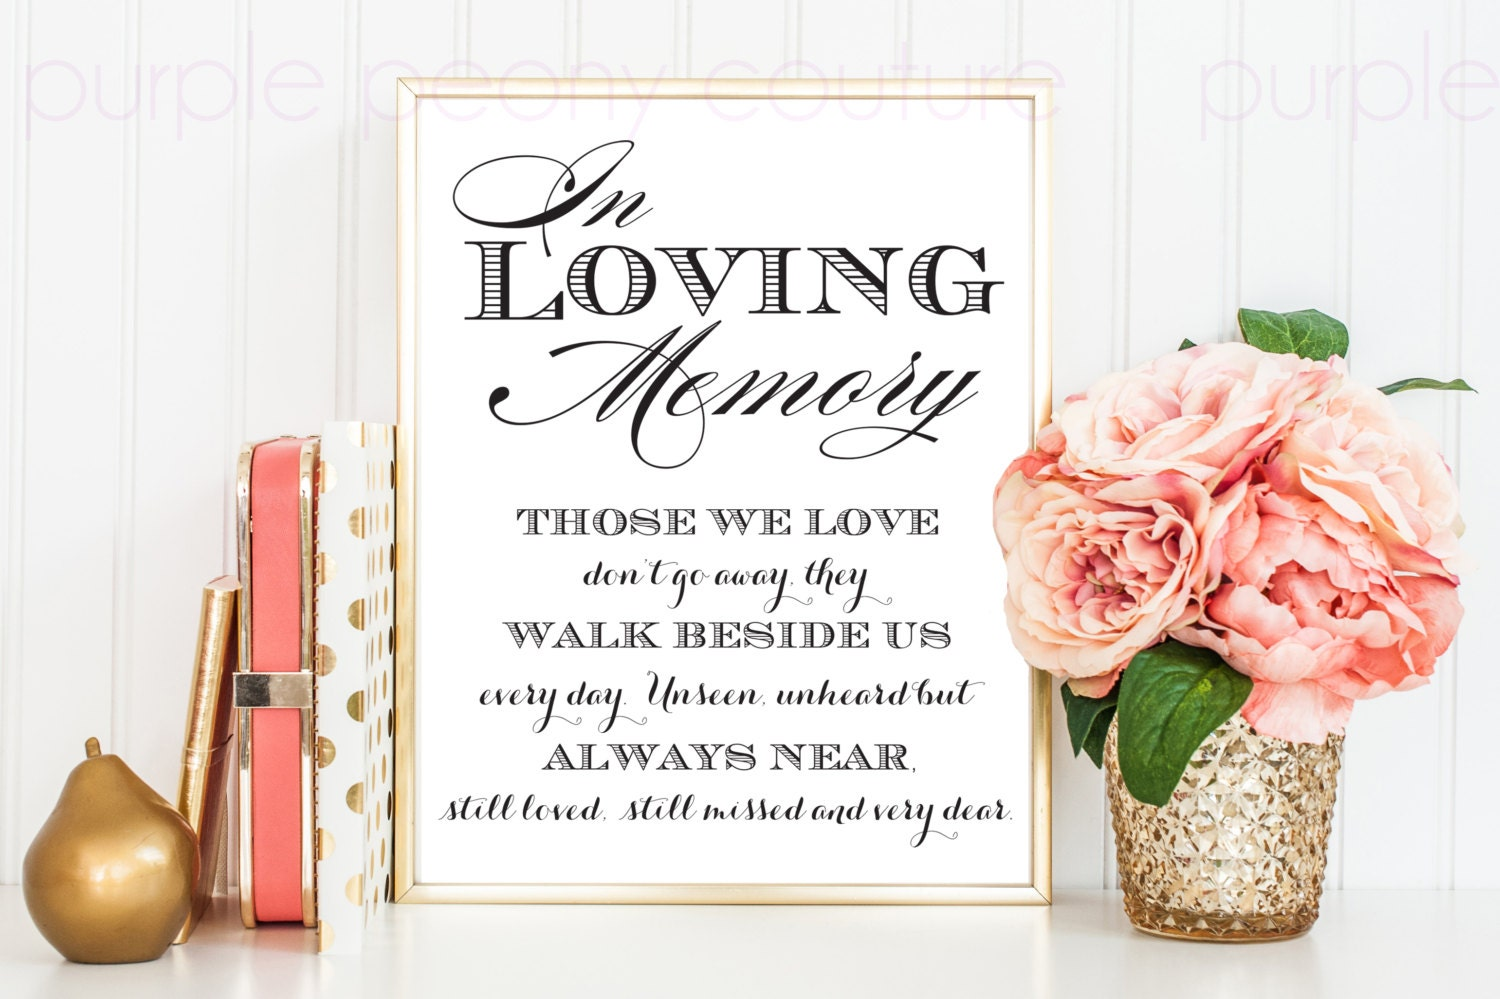 In Loving Memory Templates – quantumgaming.co